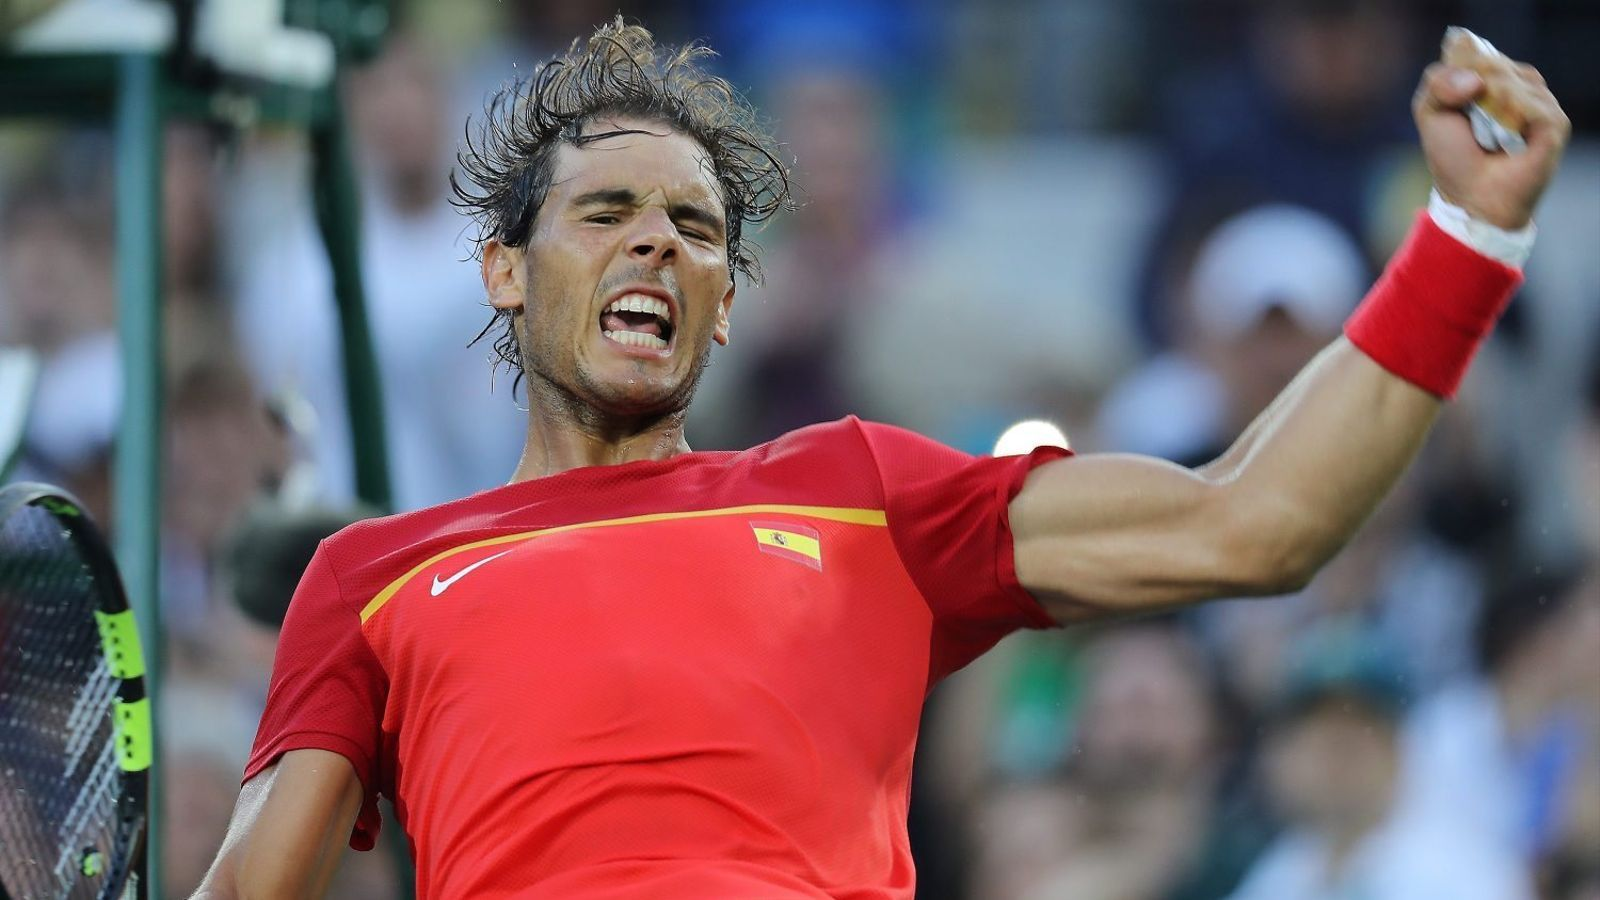 Rafa Nadal, irreductible